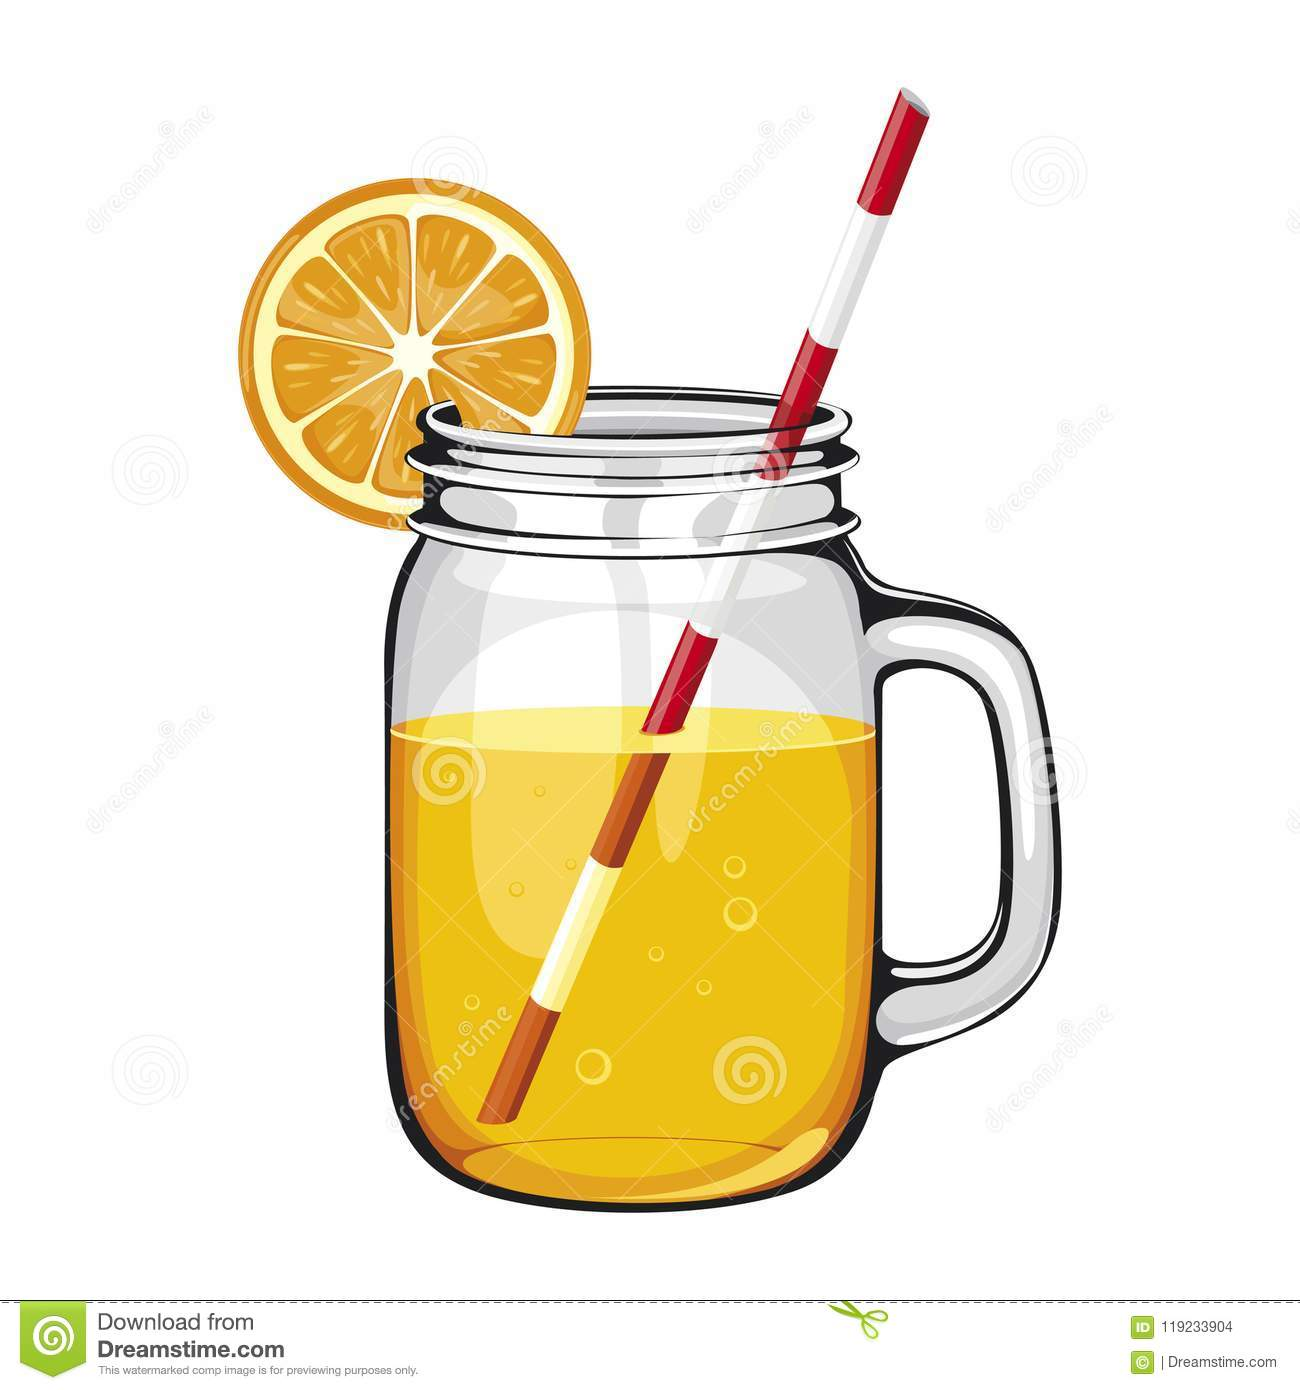 Orange juice,smoothie, in a mason jar with a straw, DECORATED WITH AN ORANGE SLICE.